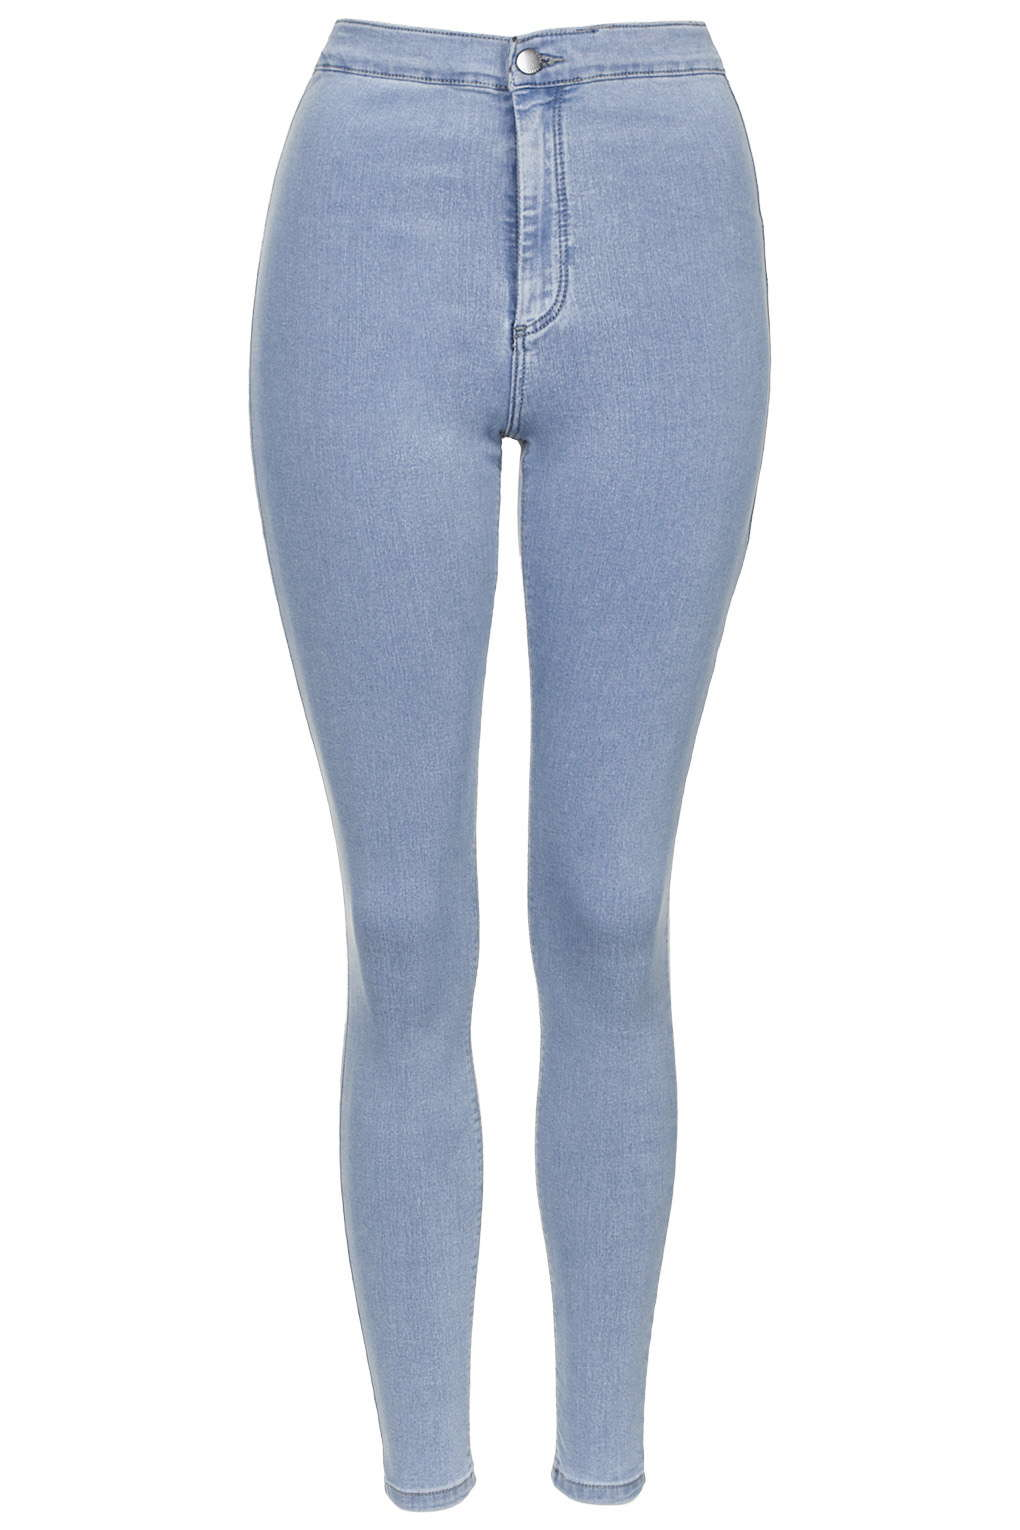 Topshop Joni Jeans - Size W24 L30 Size 6 High waisted Great condition! Hardly worn as they are too short for me.